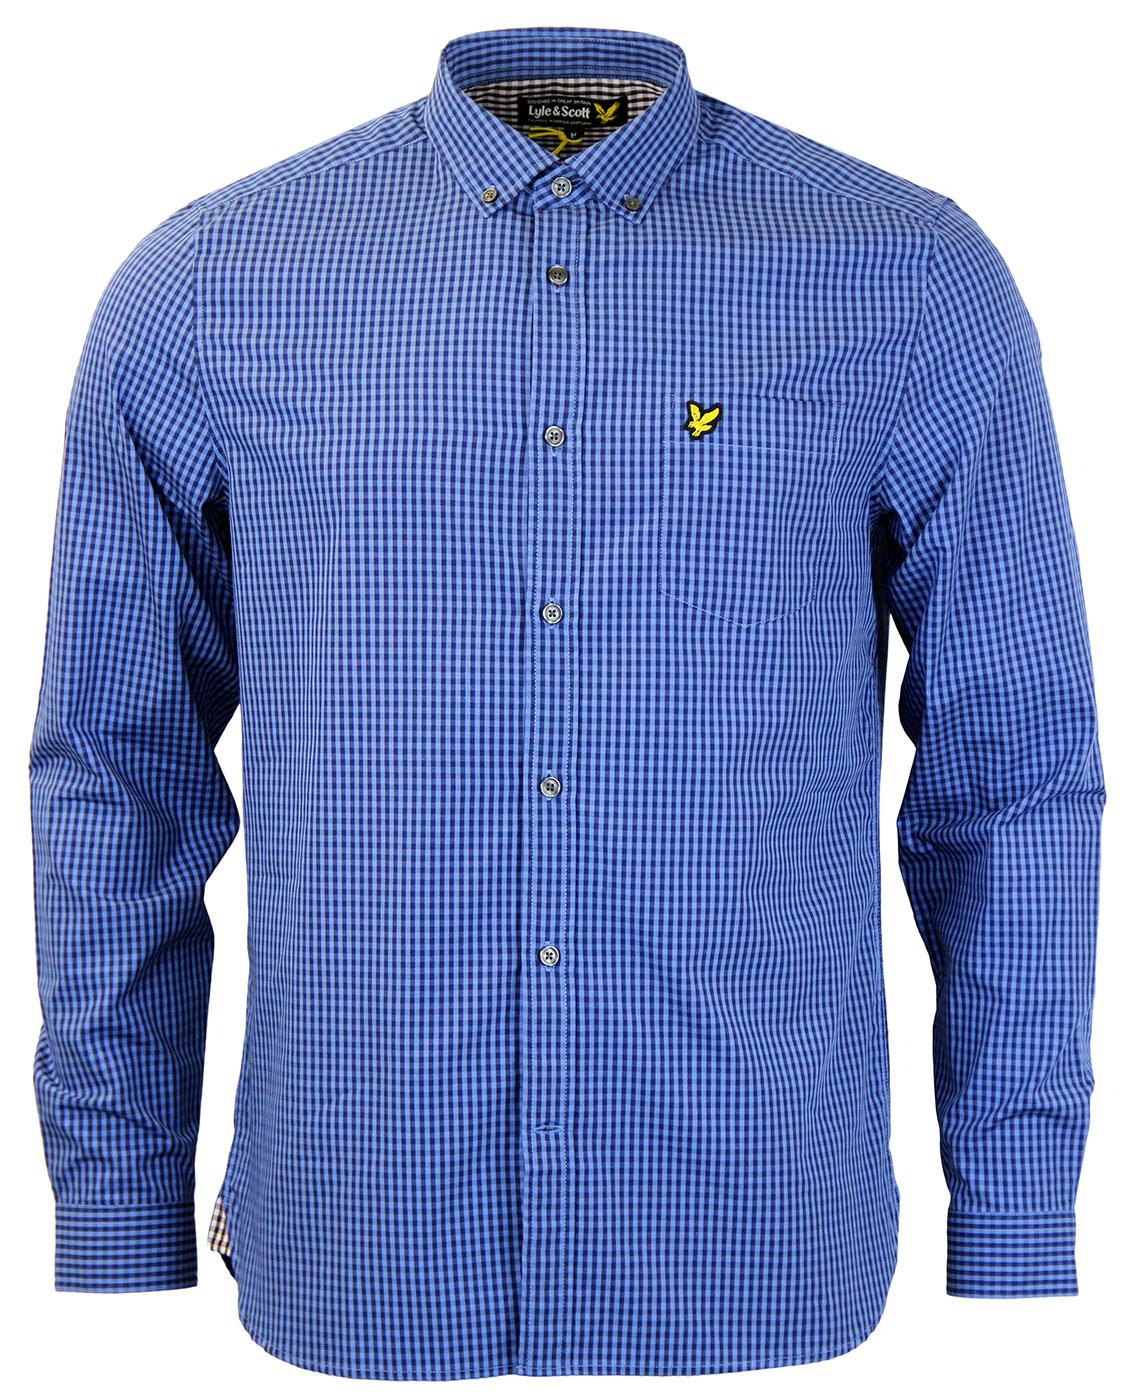 Gingham LYLE AND SCOTT Check Button Down Shirt